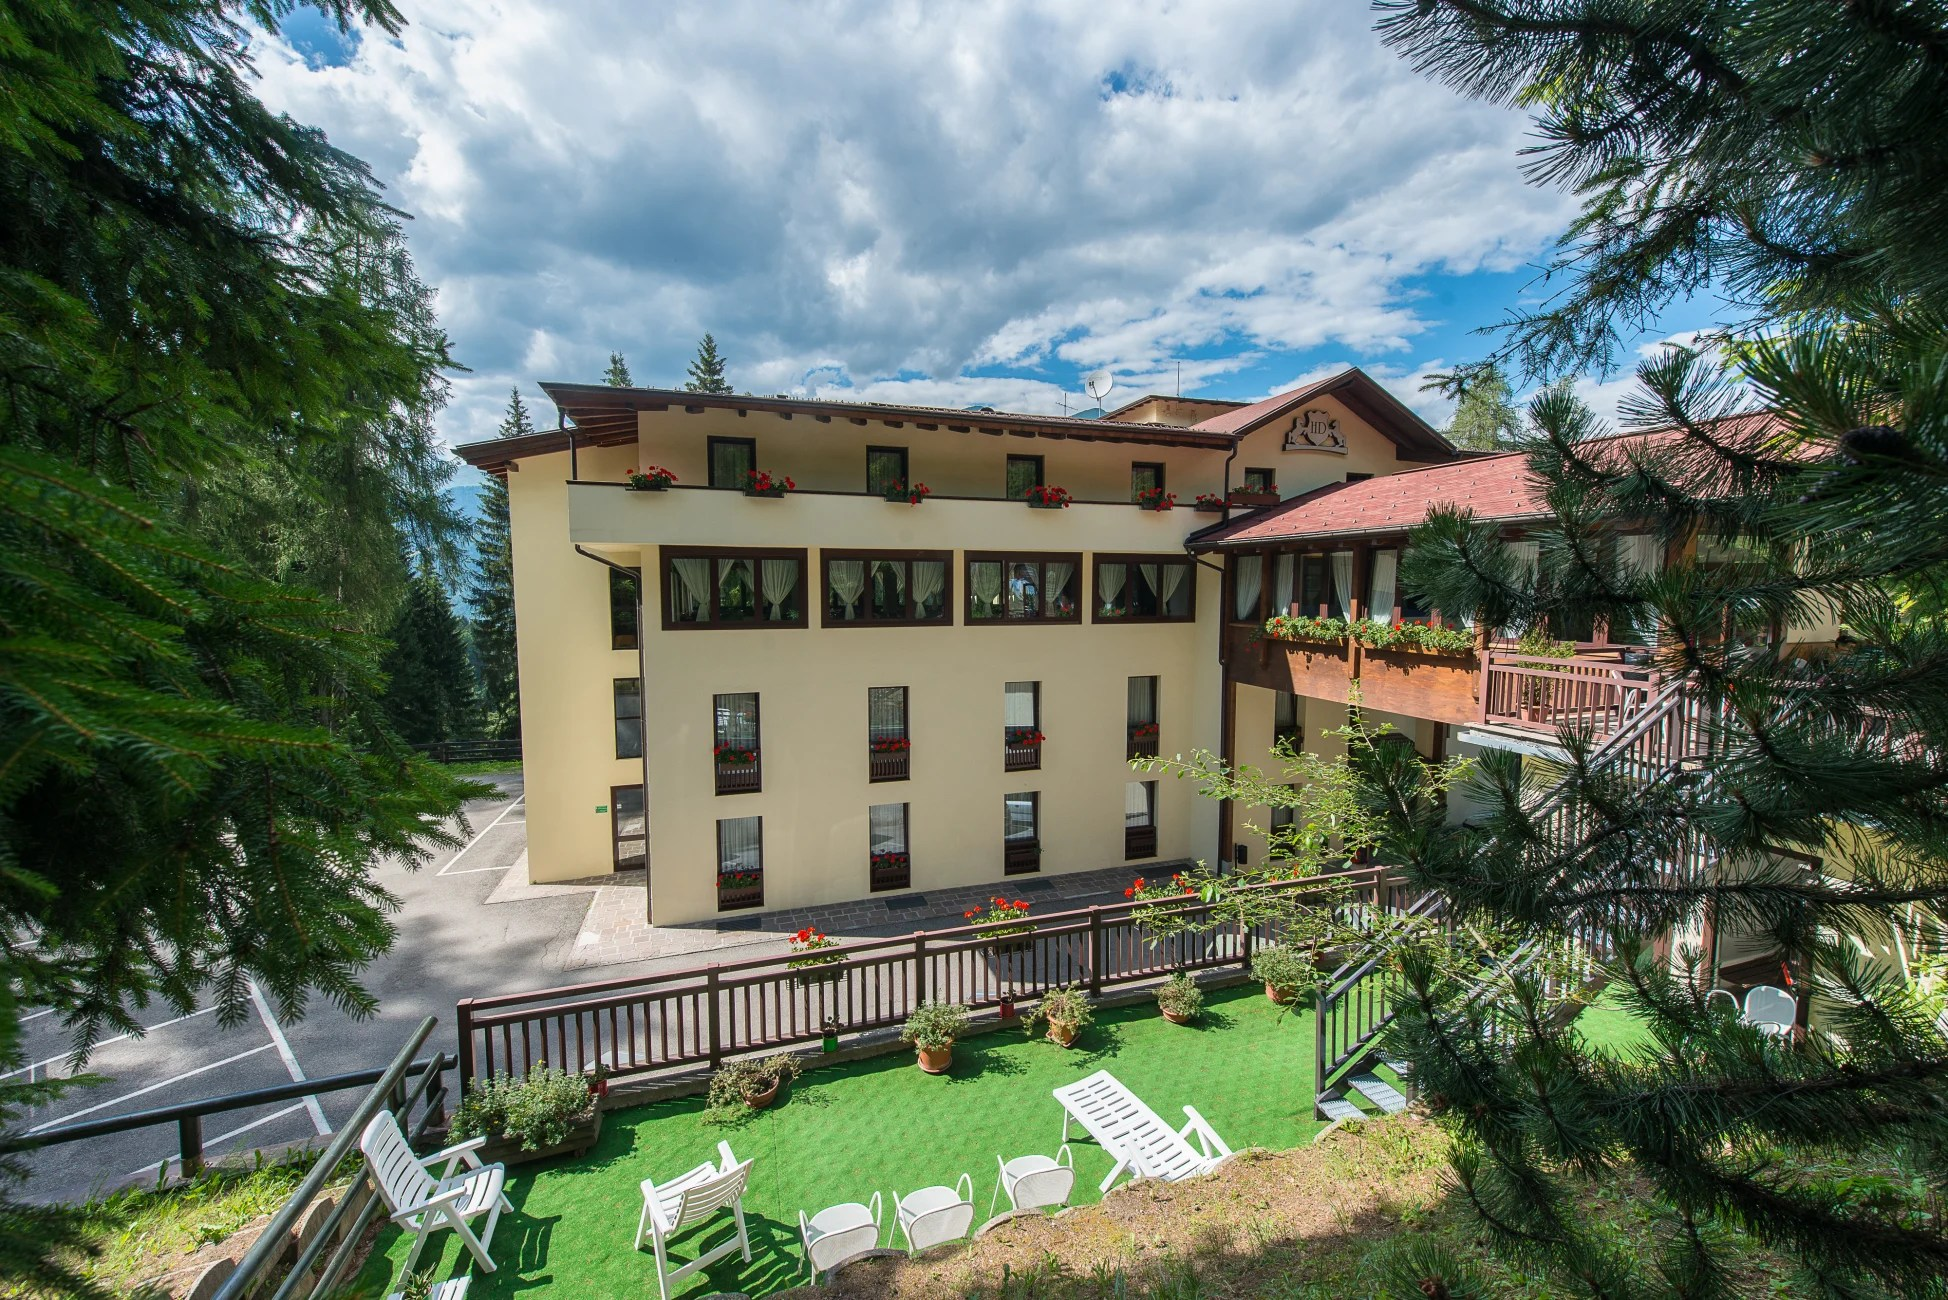 Hotel Caminetto Folgarida Booking Hotel Derby Folgarida Trivago It